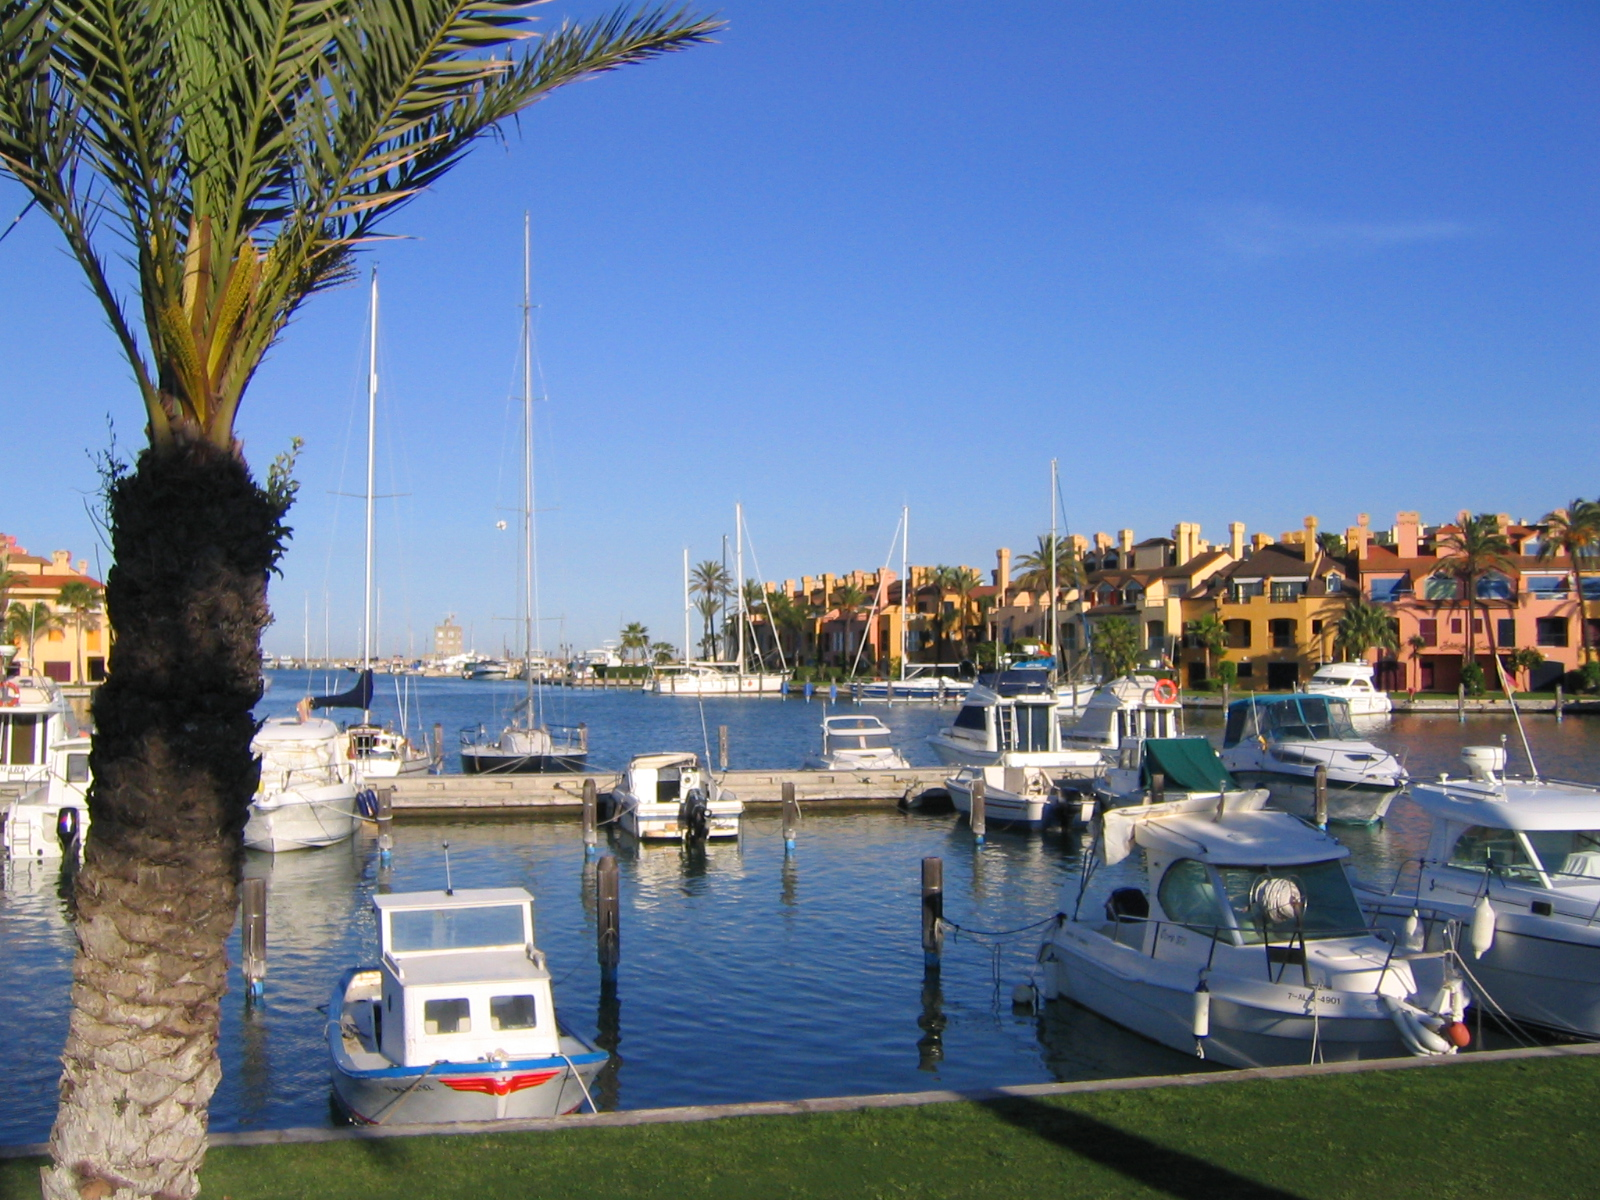 Foto playa Torreguadiaro / Playa de las Conchas. The yachts and expensive apartments of Sotogrande